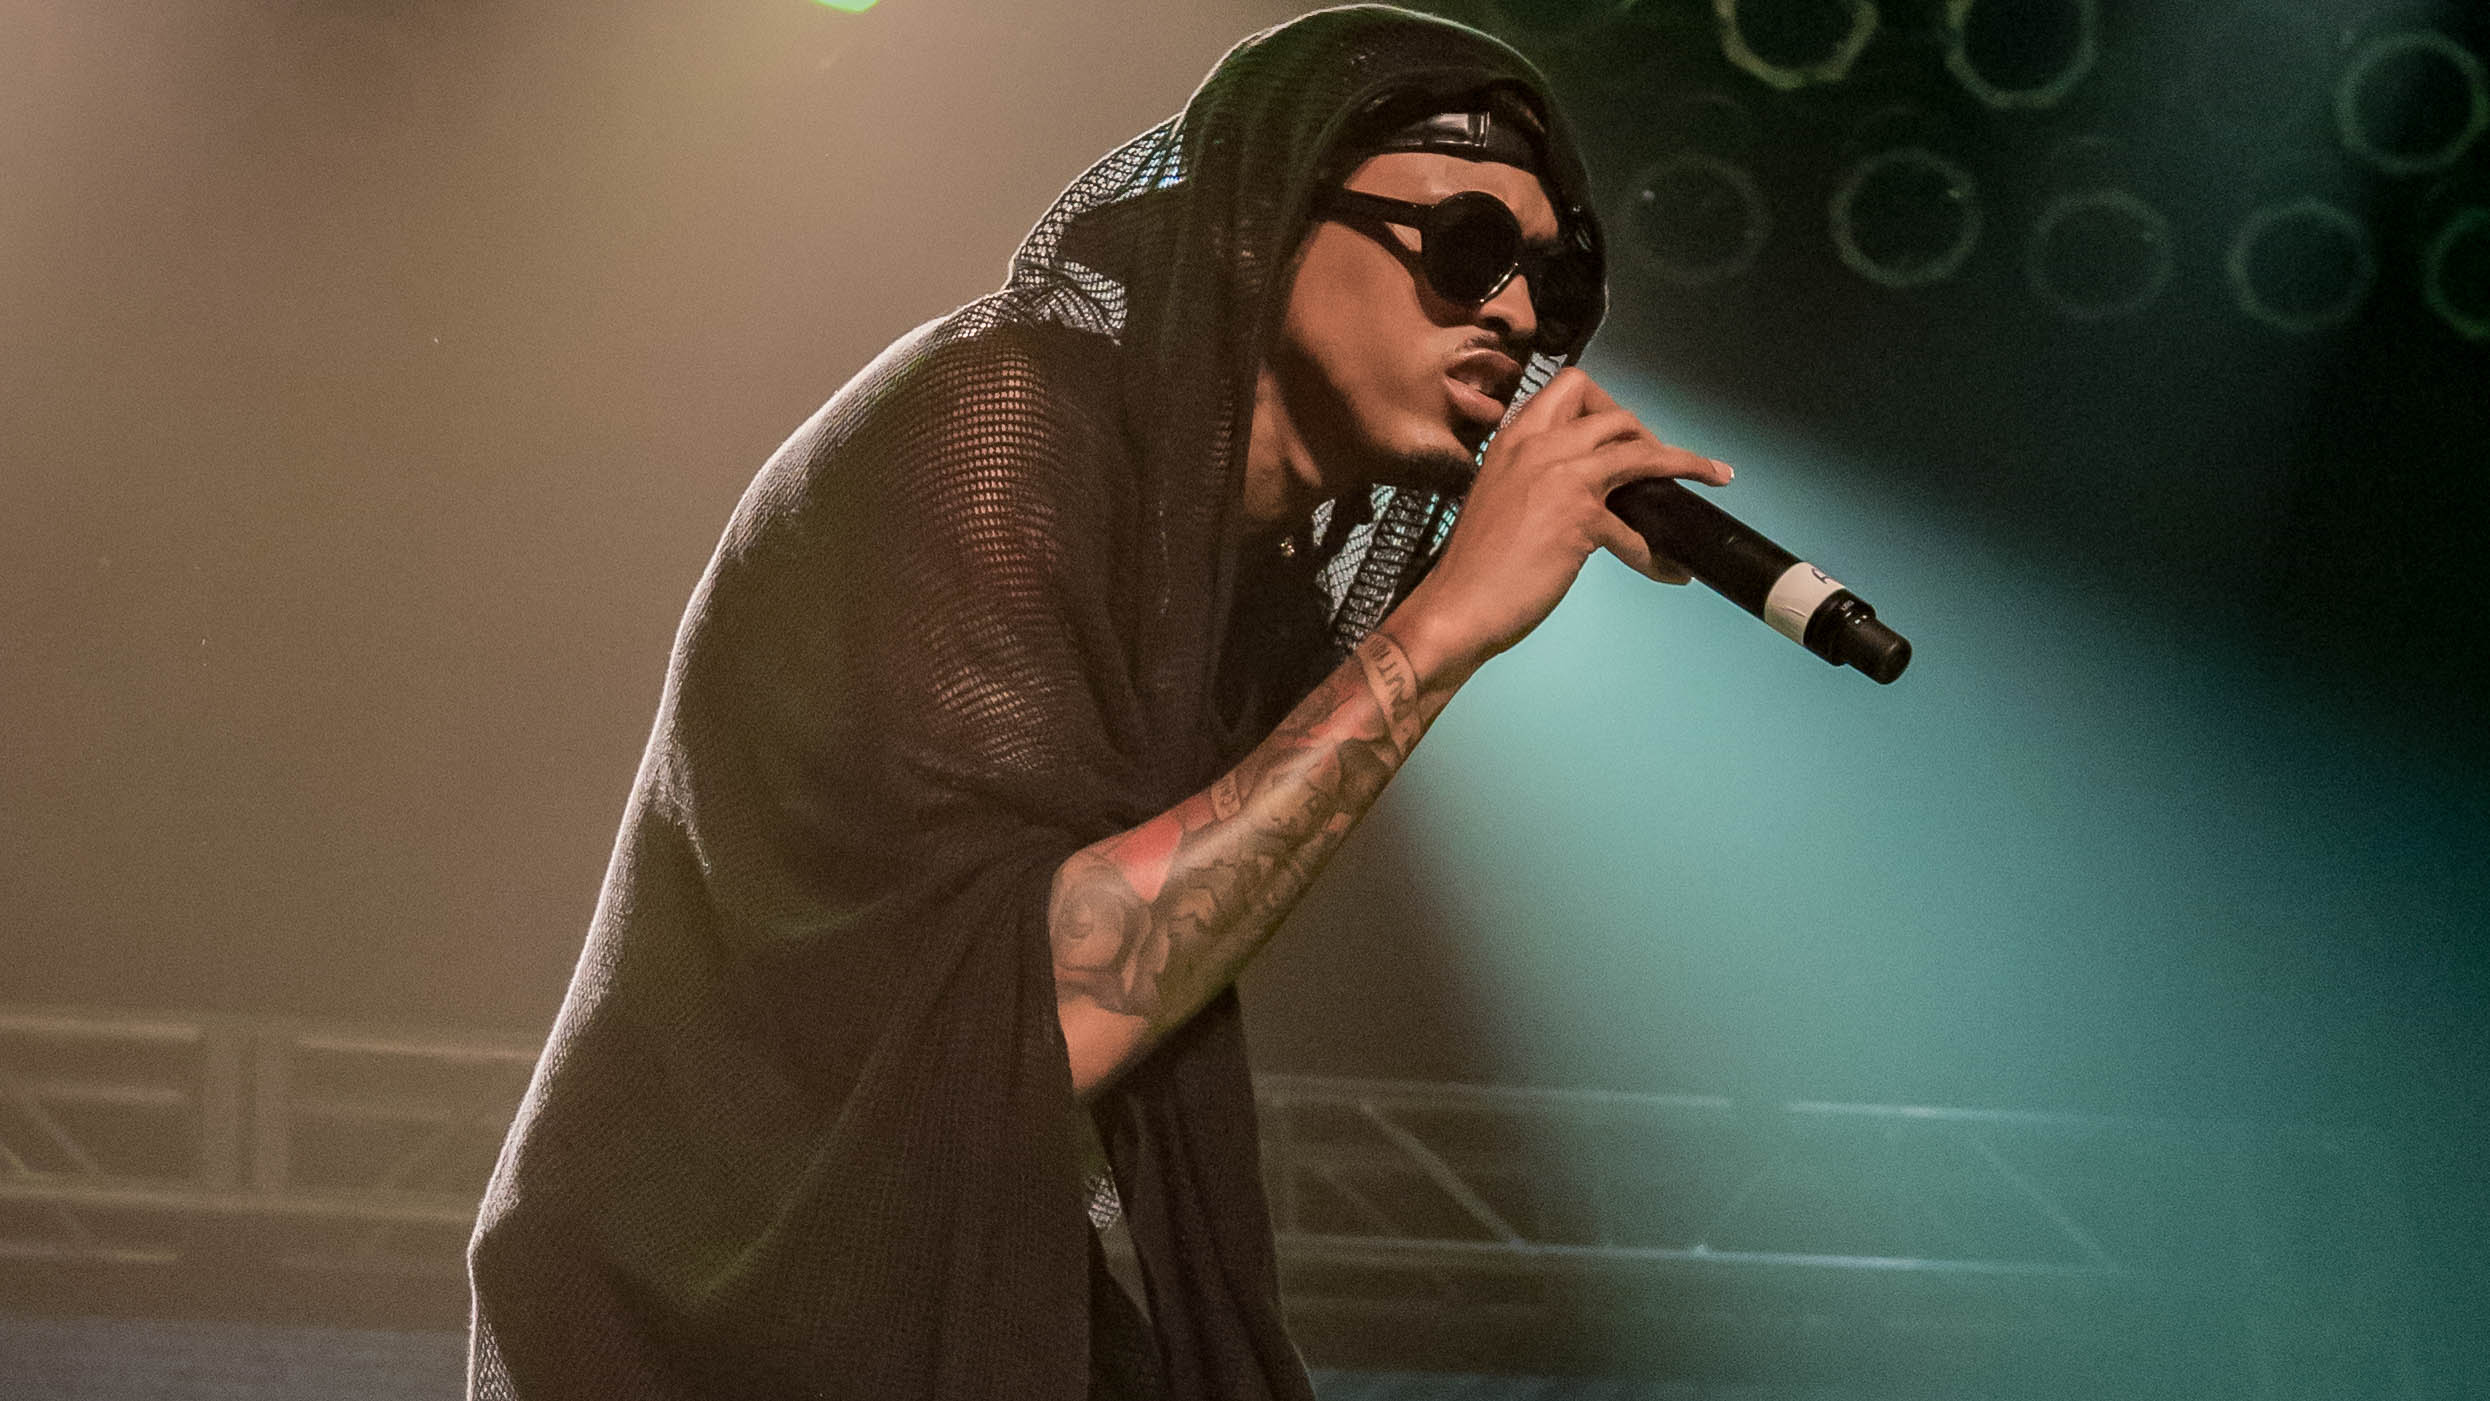 August Alsina. House of Blues 2017.